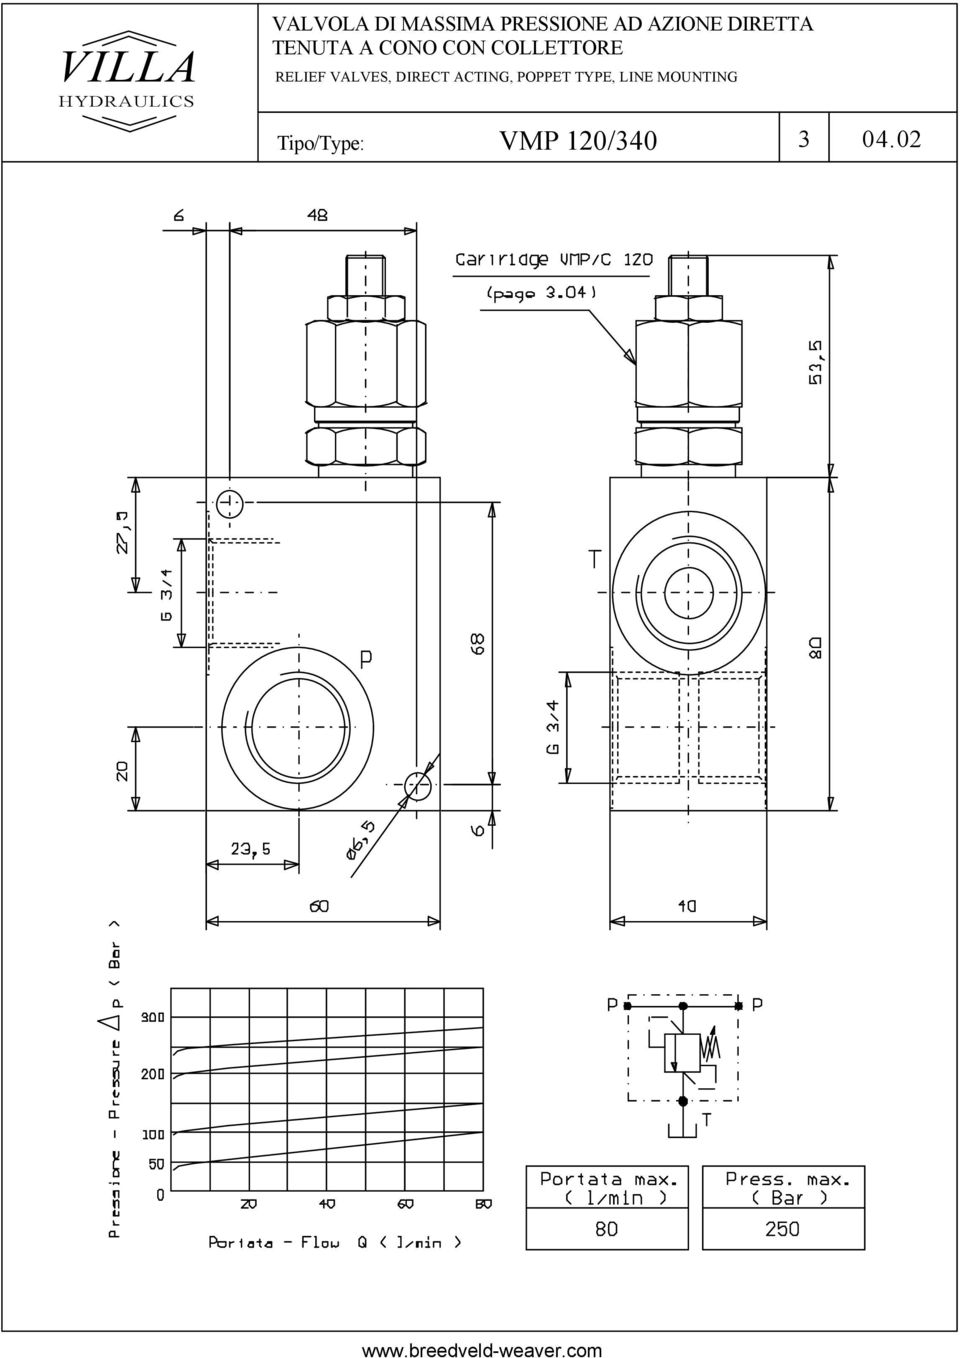 RELIEF VALVES, DIRECT ACTING, POPPET